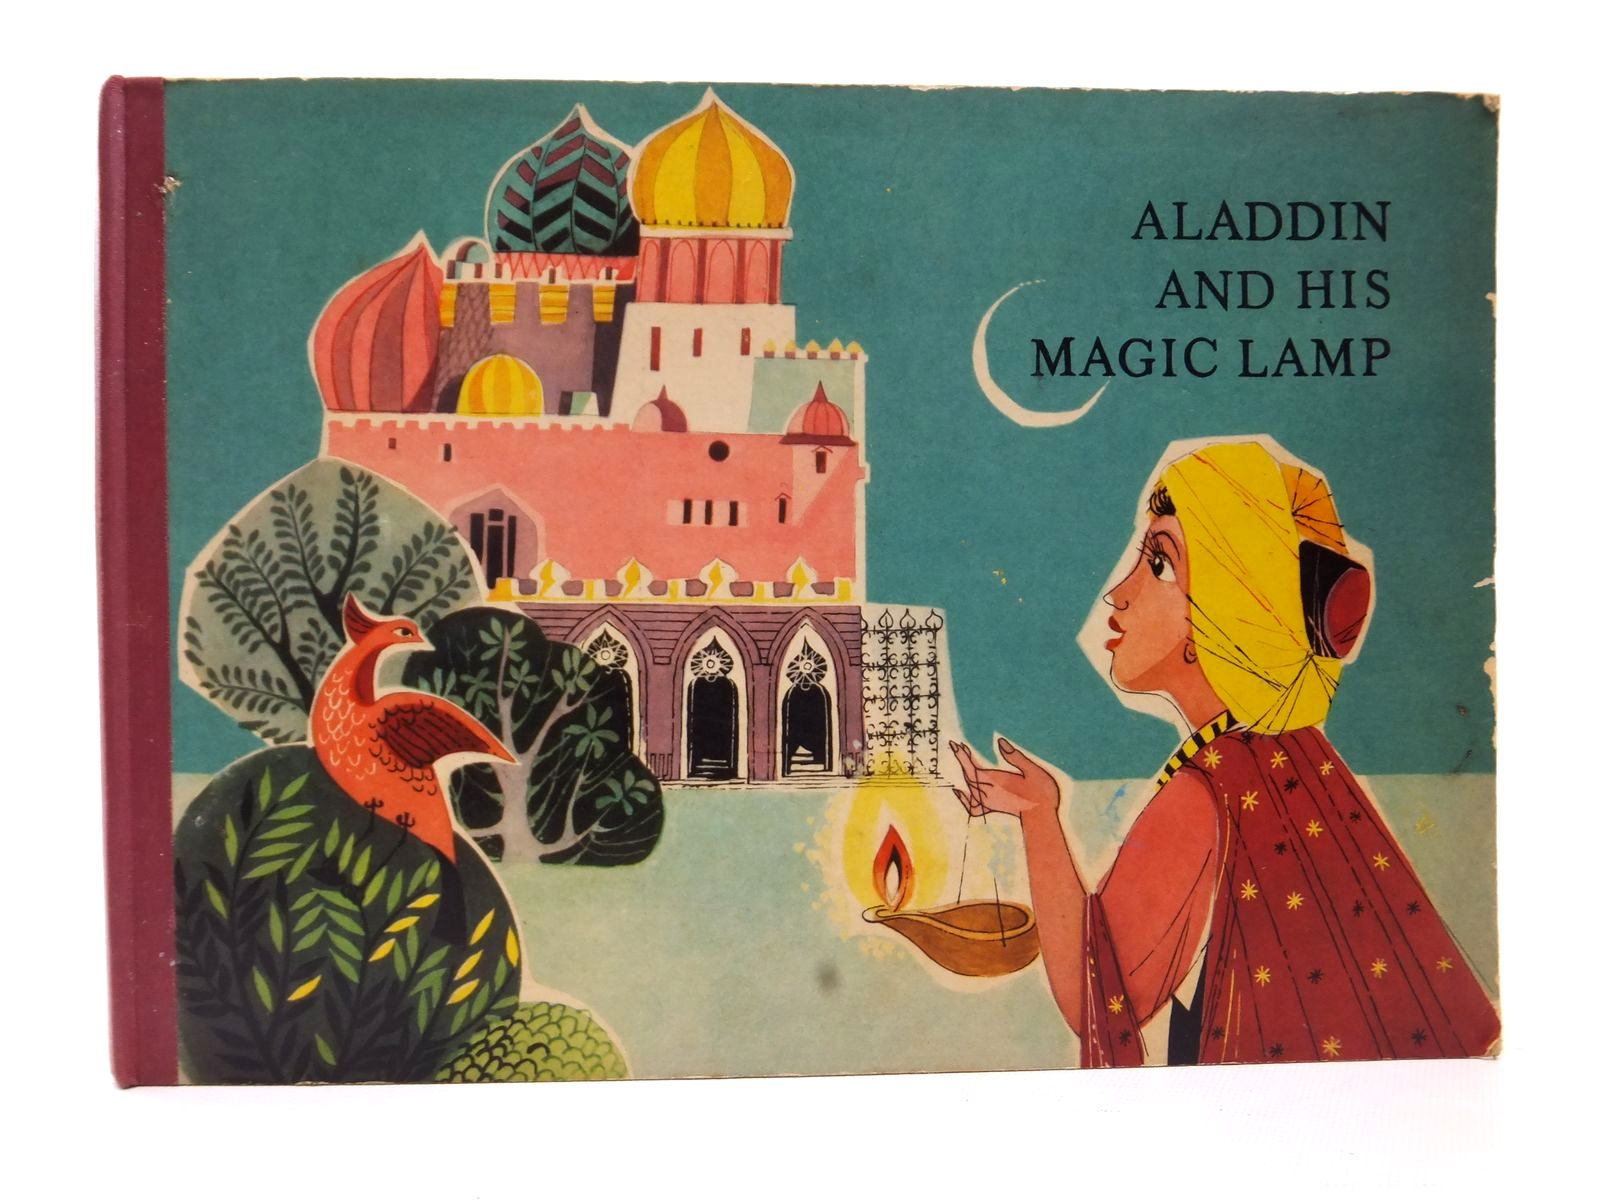 Photo of ALADDIN AND HIS MAGIC LAMP published by Bancroft & Co.(Publishers) Ltd. (STOCK CODE: 1609153)  for sale by Stella & Rose's Books